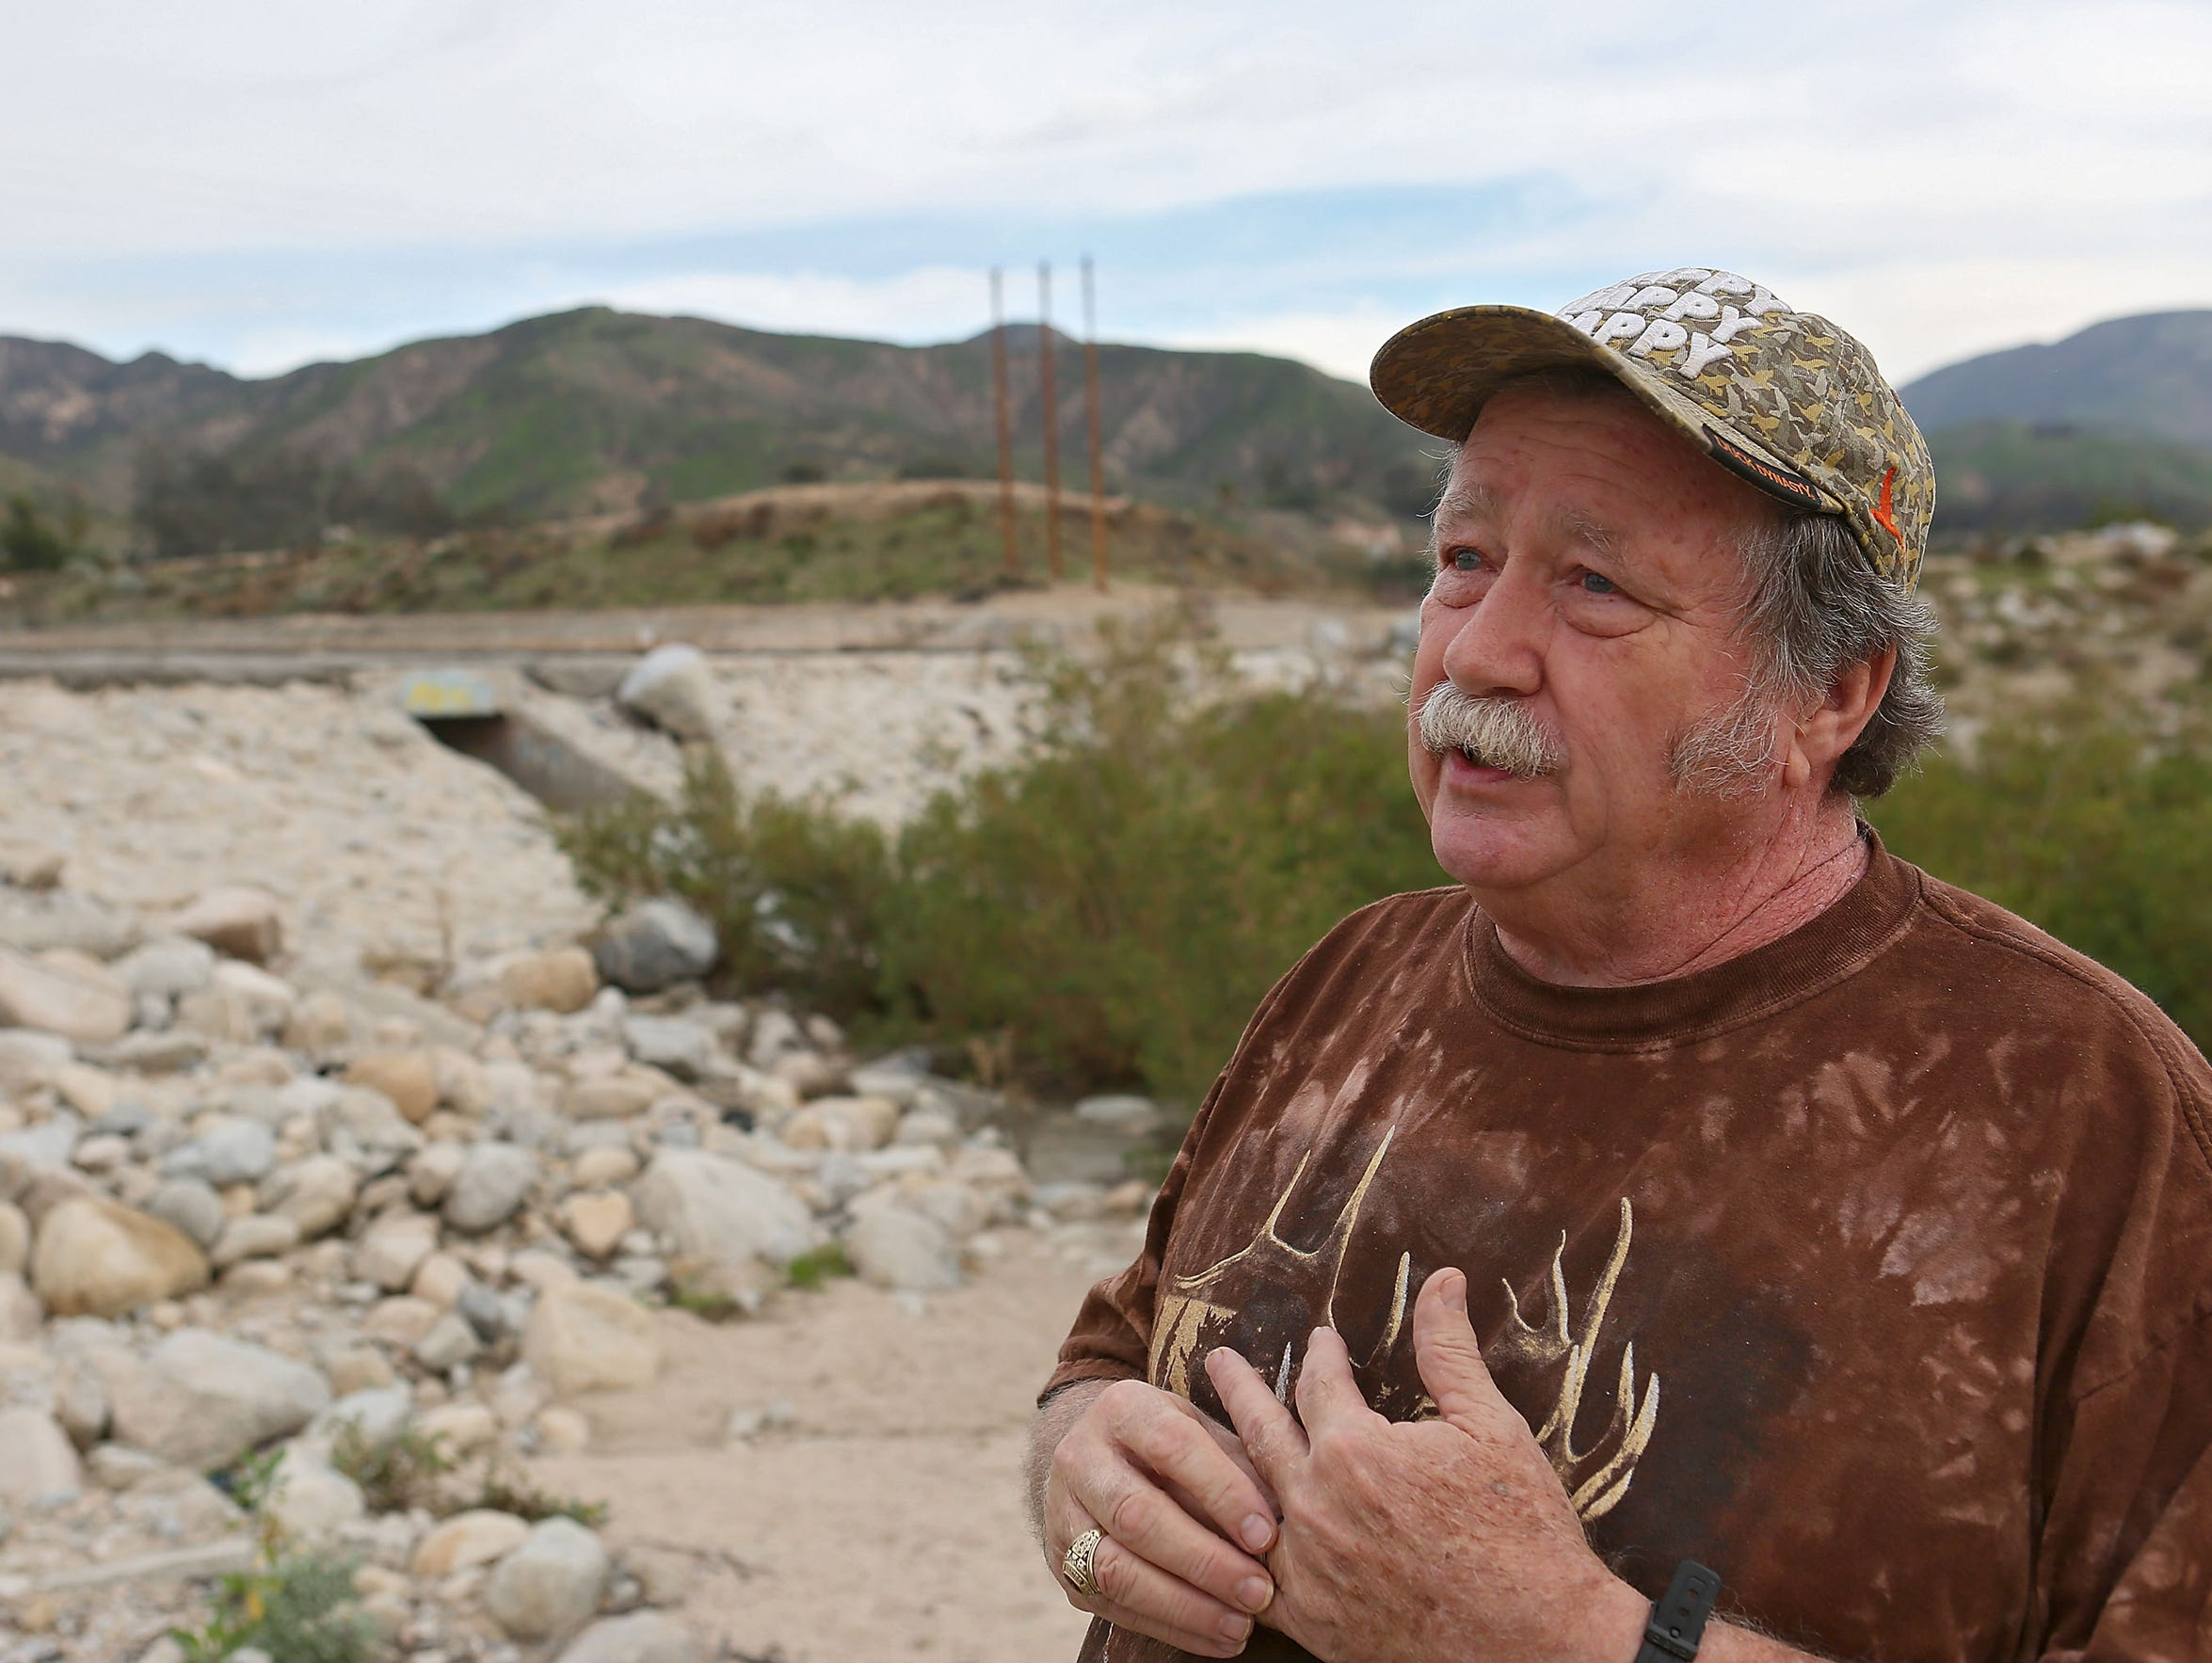 Retired Forest Service biologist Steve Loe voices concerns